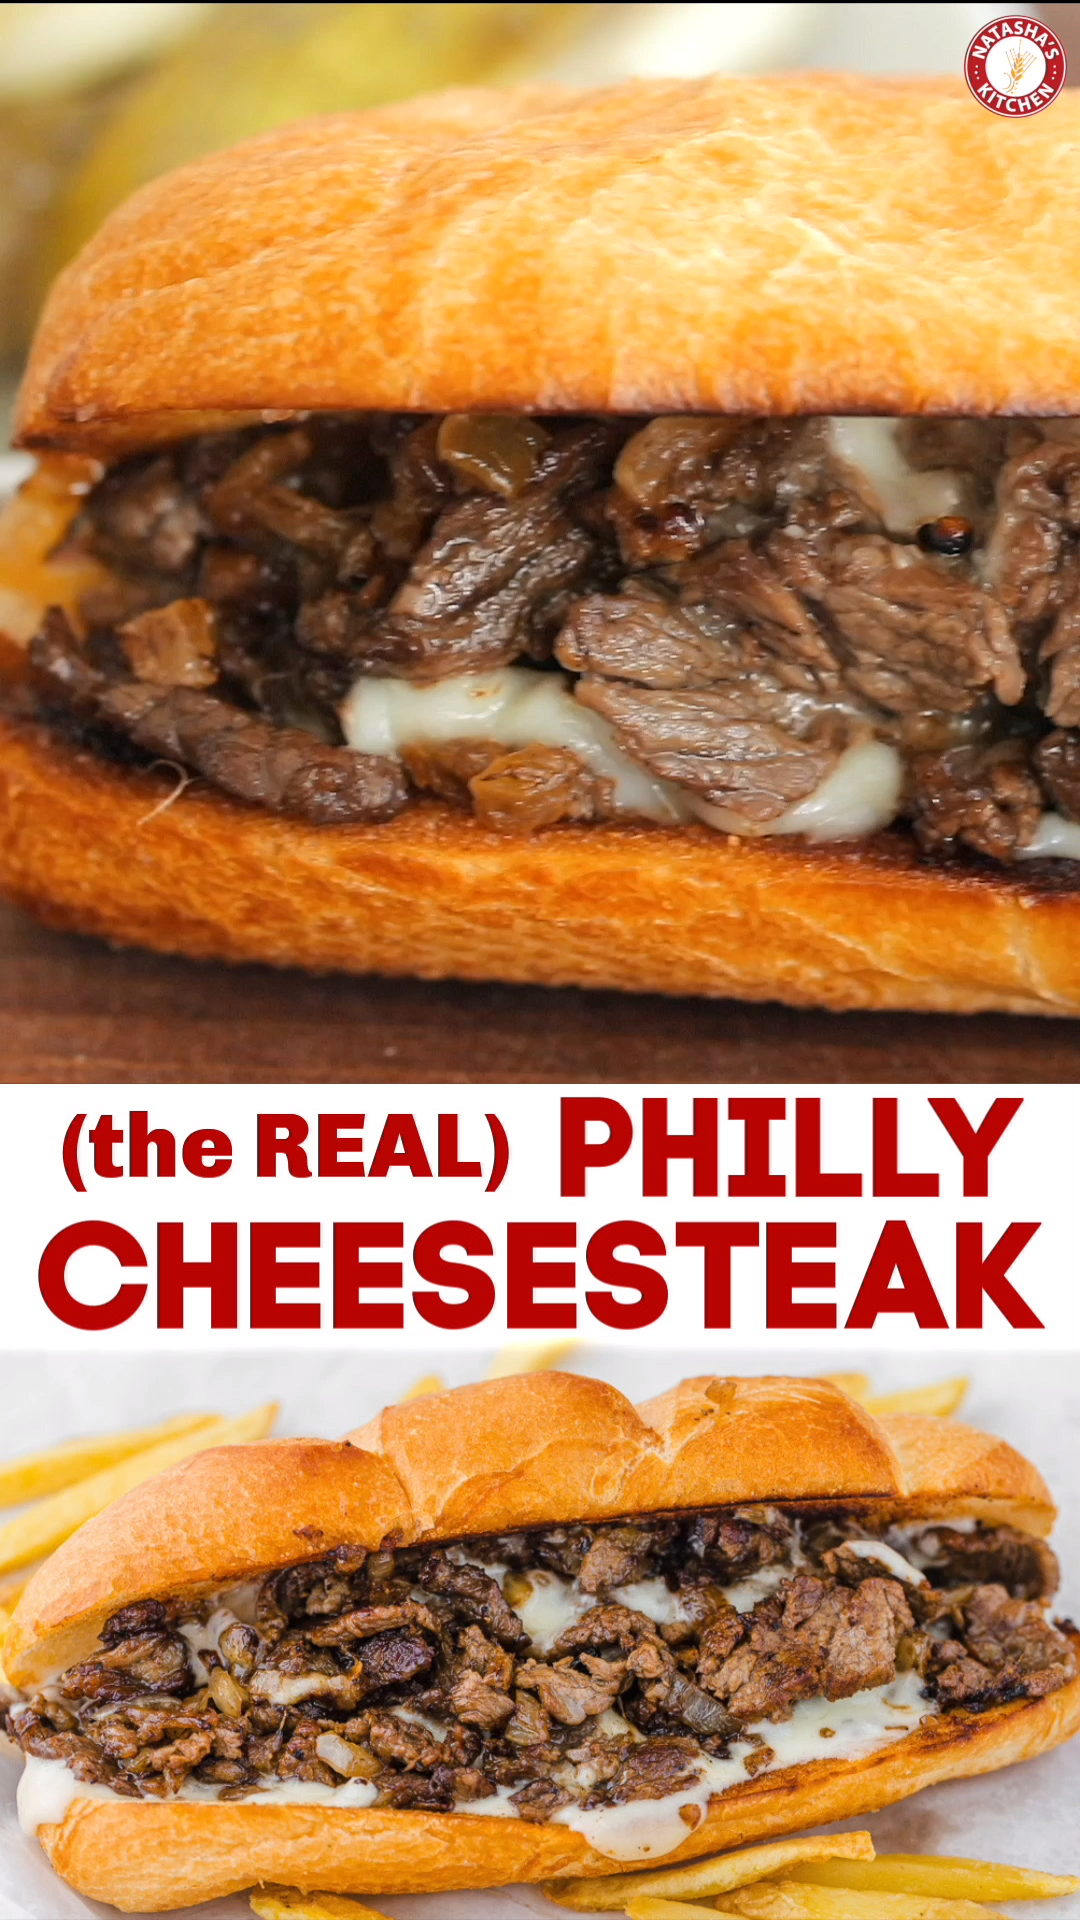 Cheesesteak Recipe - Tiffanie